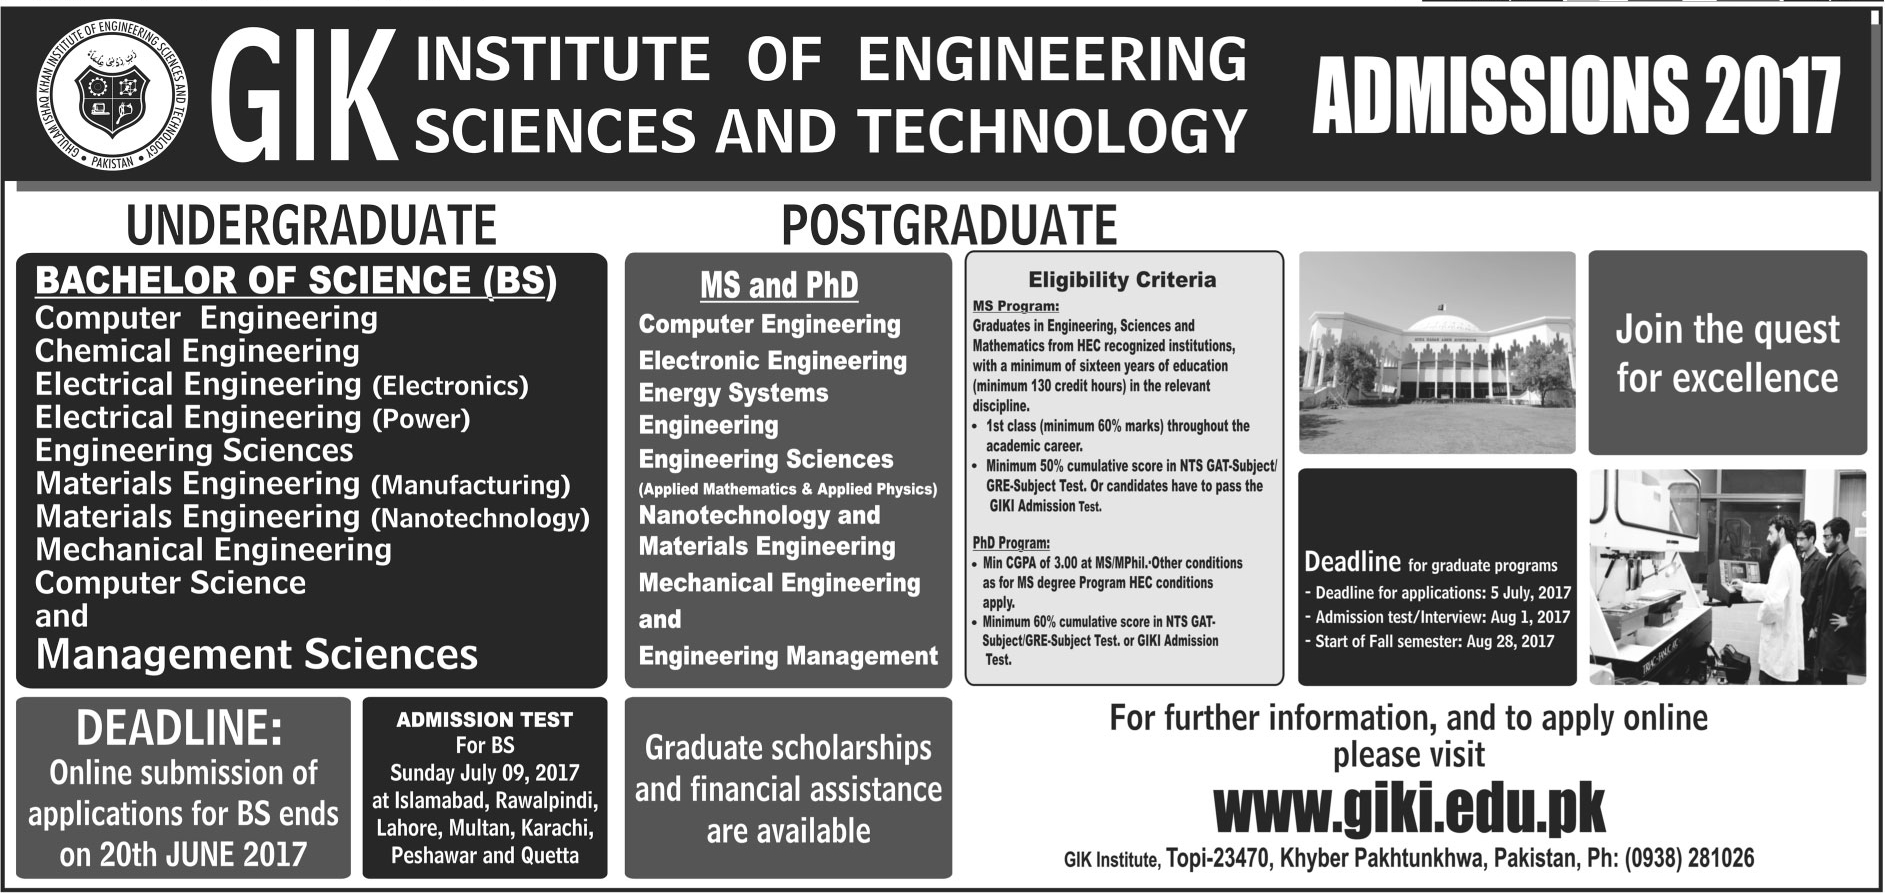 GIKI Ghulam Ishaq Khan Institute of Engineering Sciences and Technology Admission 2017 Undergraduate and Graduate Programs Form Donwload Entry Test Schedule